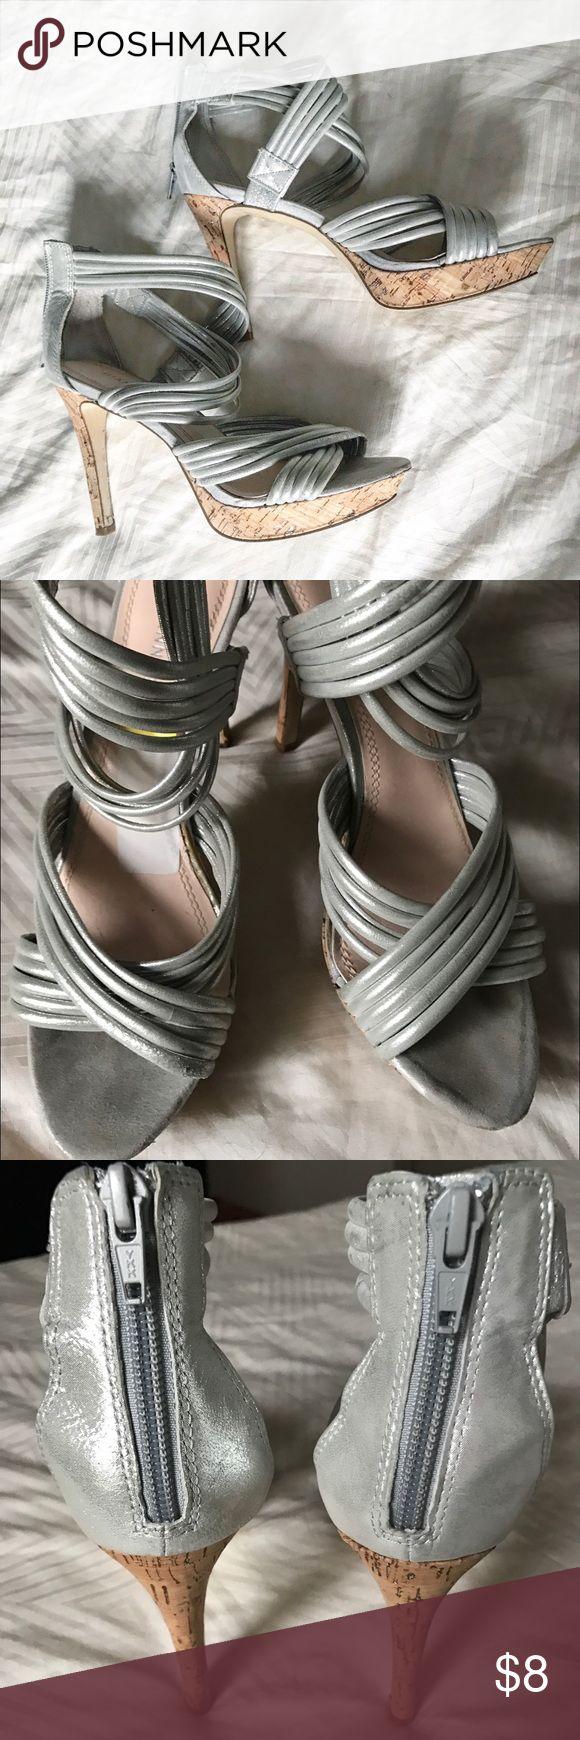 Gianni bini 8.5 silver strappy heels - like new! Gorgeous Gianni Bini heels, like new, size 8.5! I do killer bundle deals, check out my other listings ❤️🎉 Gianni Bini Shoes Heels